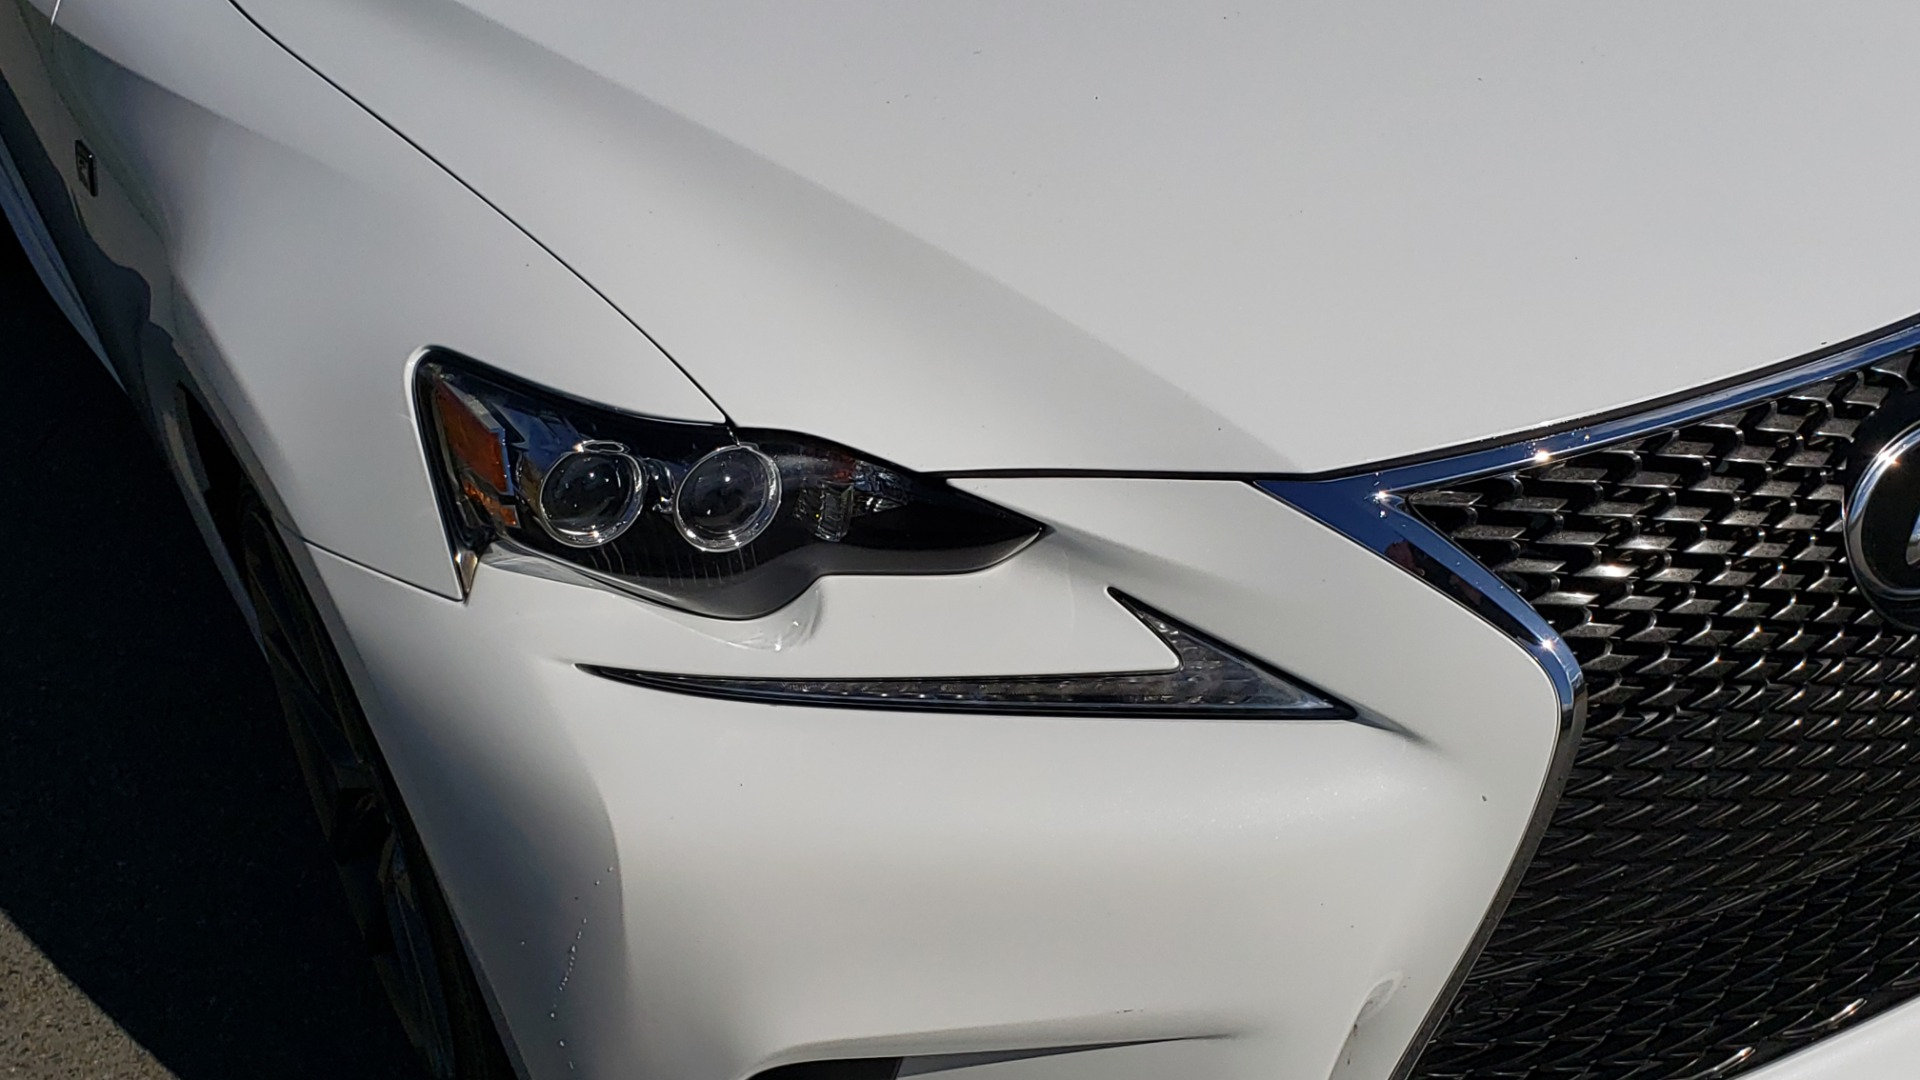 Used 2014 Lexus IS 250 F-SPORT / NAV / SUNROOF / REARVIEW / BSM for sale Sold at Formula Imports in Charlotte NC 28227 23